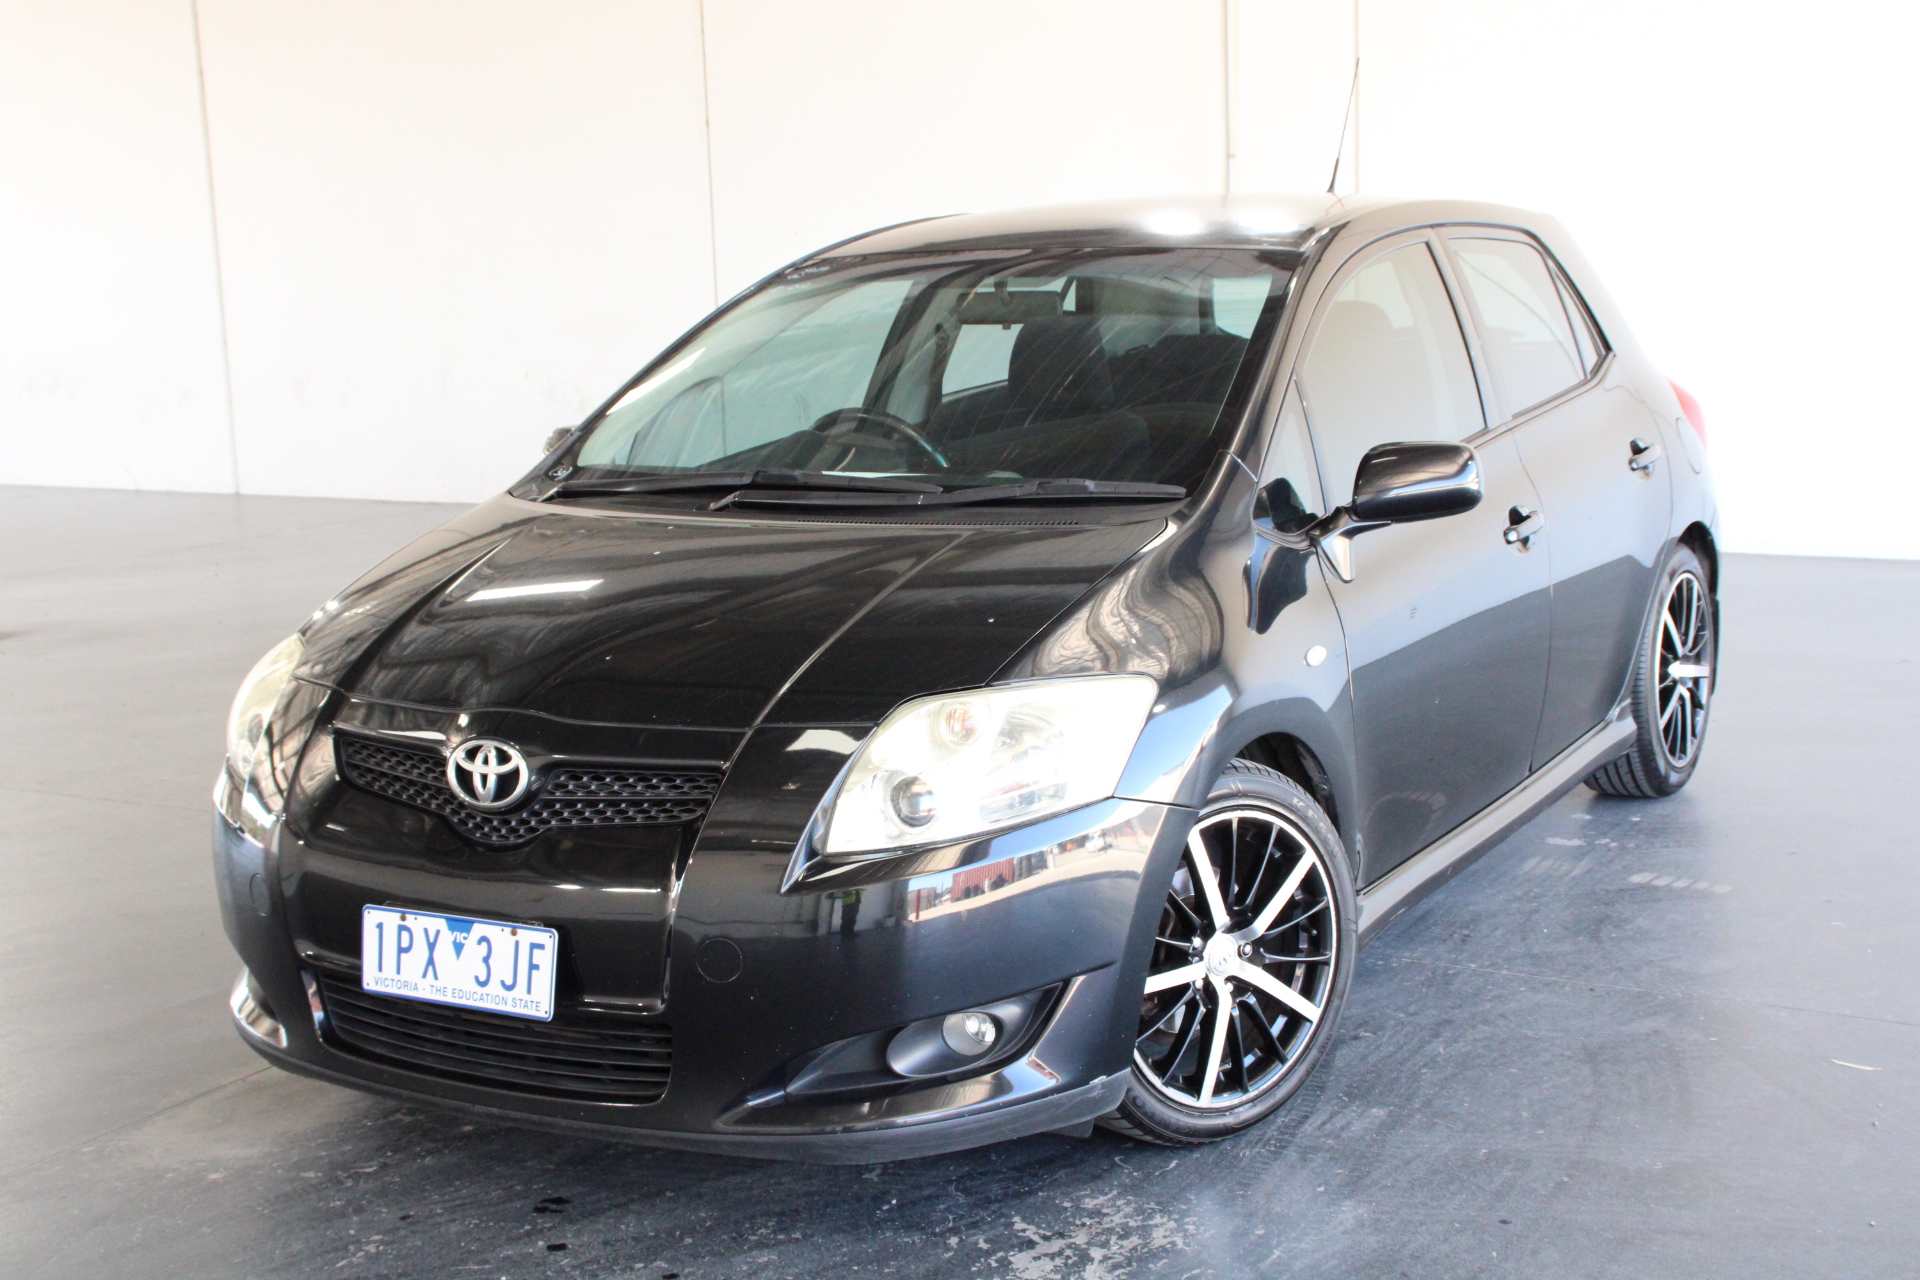 2008 Toyota Corolla LEVIN SX ZRE152R Manual Hatchback